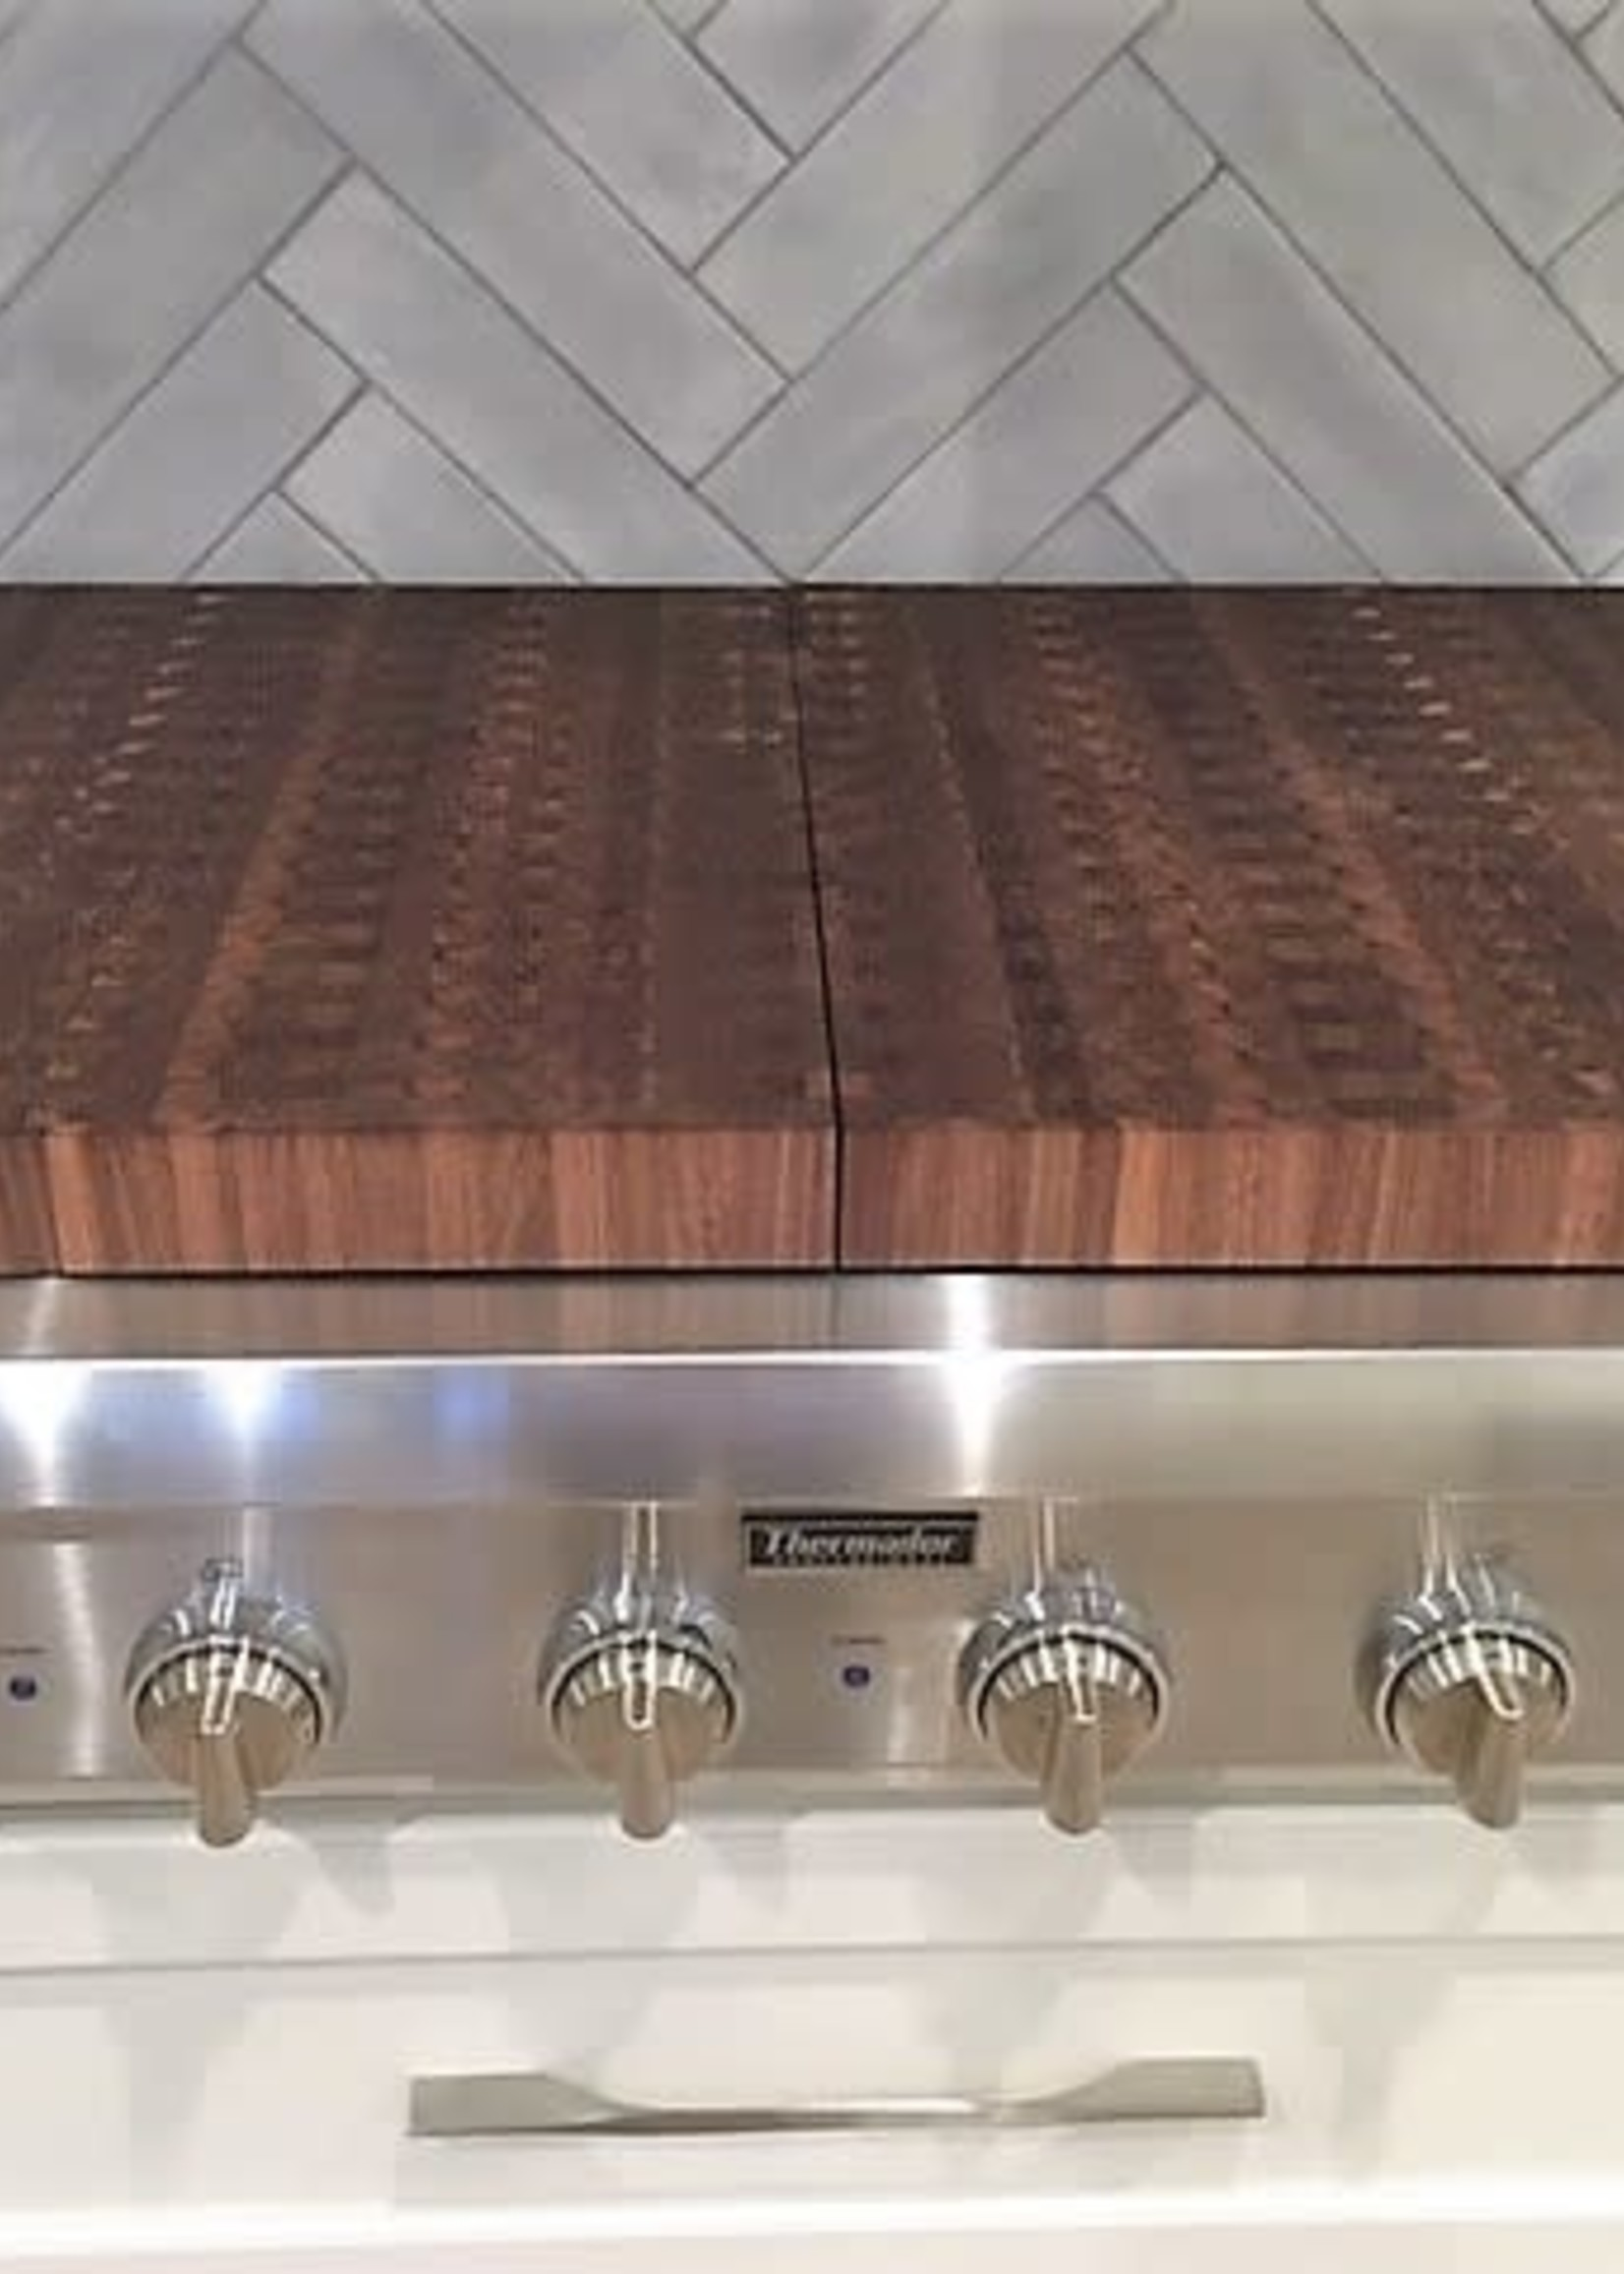 Richard Rose Culinary Custom Stove Top Covers-2 Covers for 6 Burners